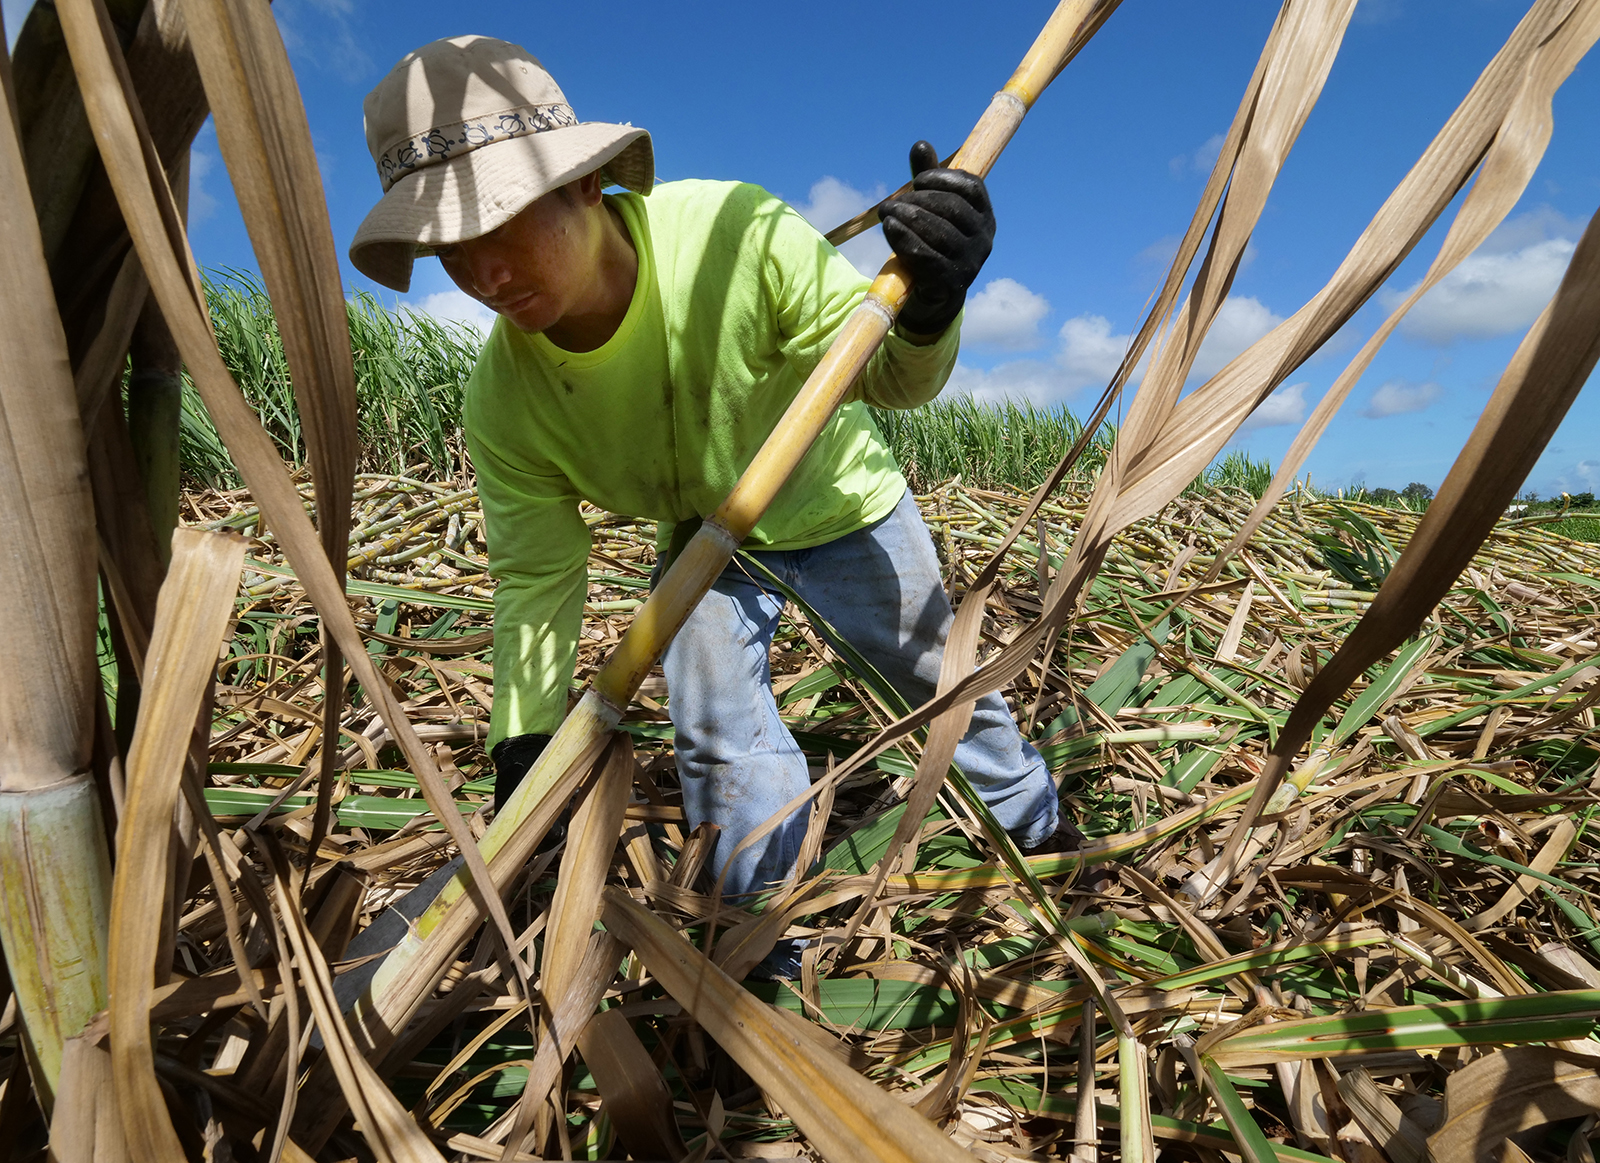 <p>A farmer cuts each stalk of year-old sugar cane by hand with a machete. The farm grows 34 different species of cane unique to Hawaii.</p>